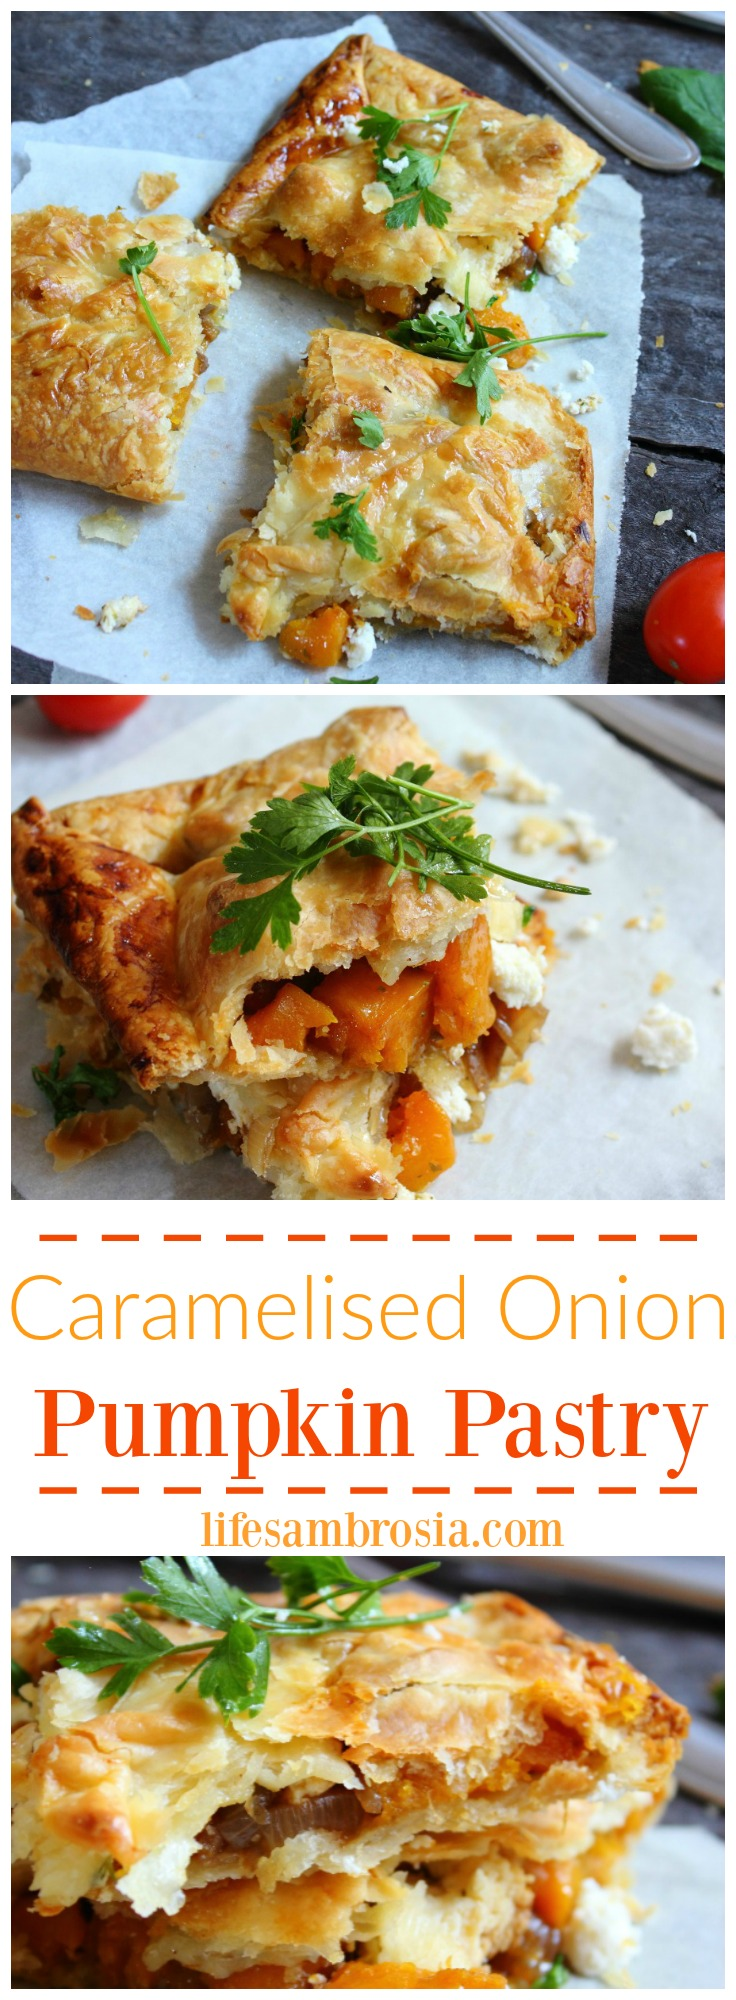 Caramelised Onion Pumpkin Pastry PINTEREST 2